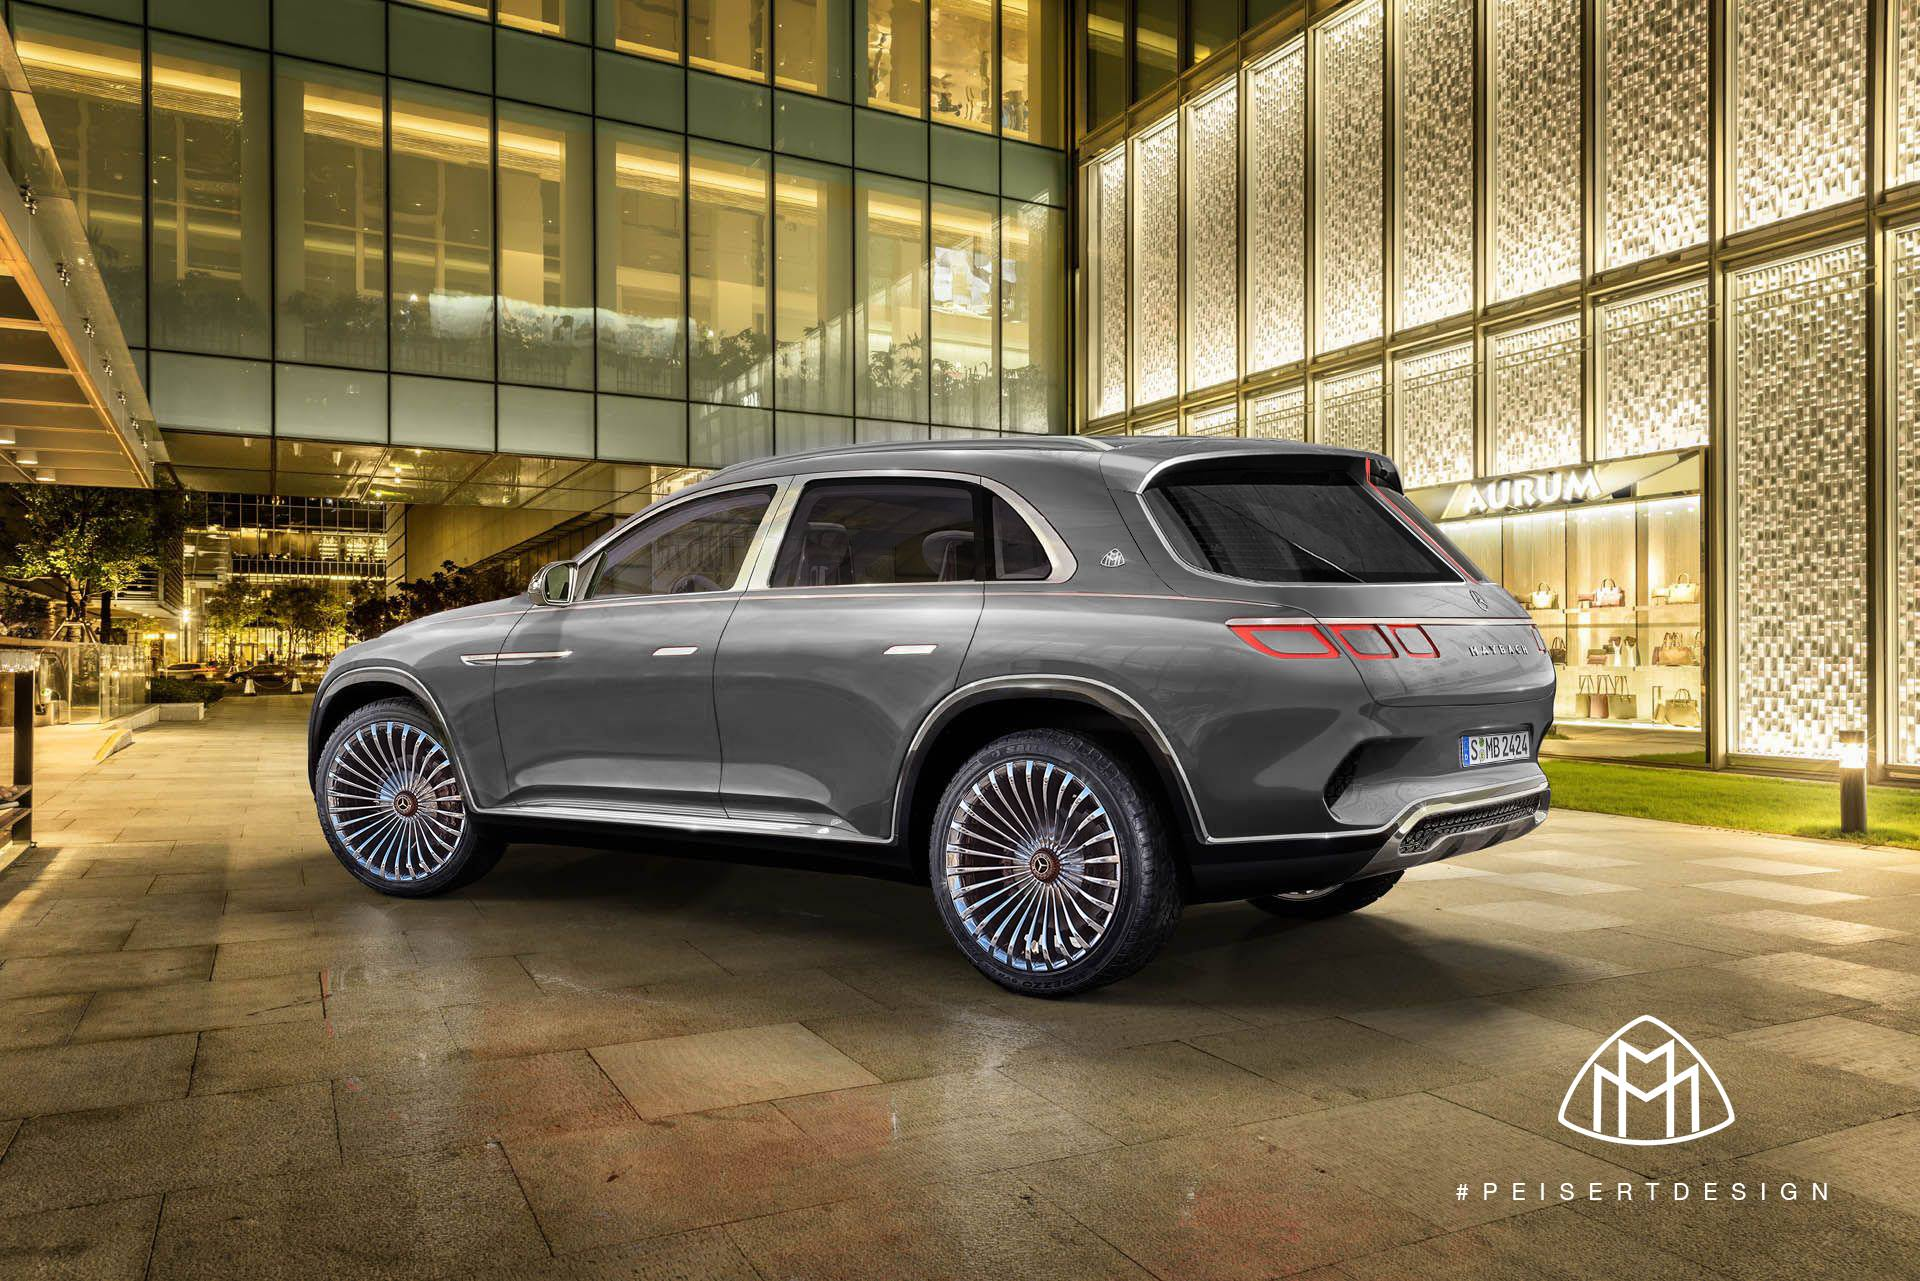 Peisert Design Rendered The Mercedes-Maybach Ultimate